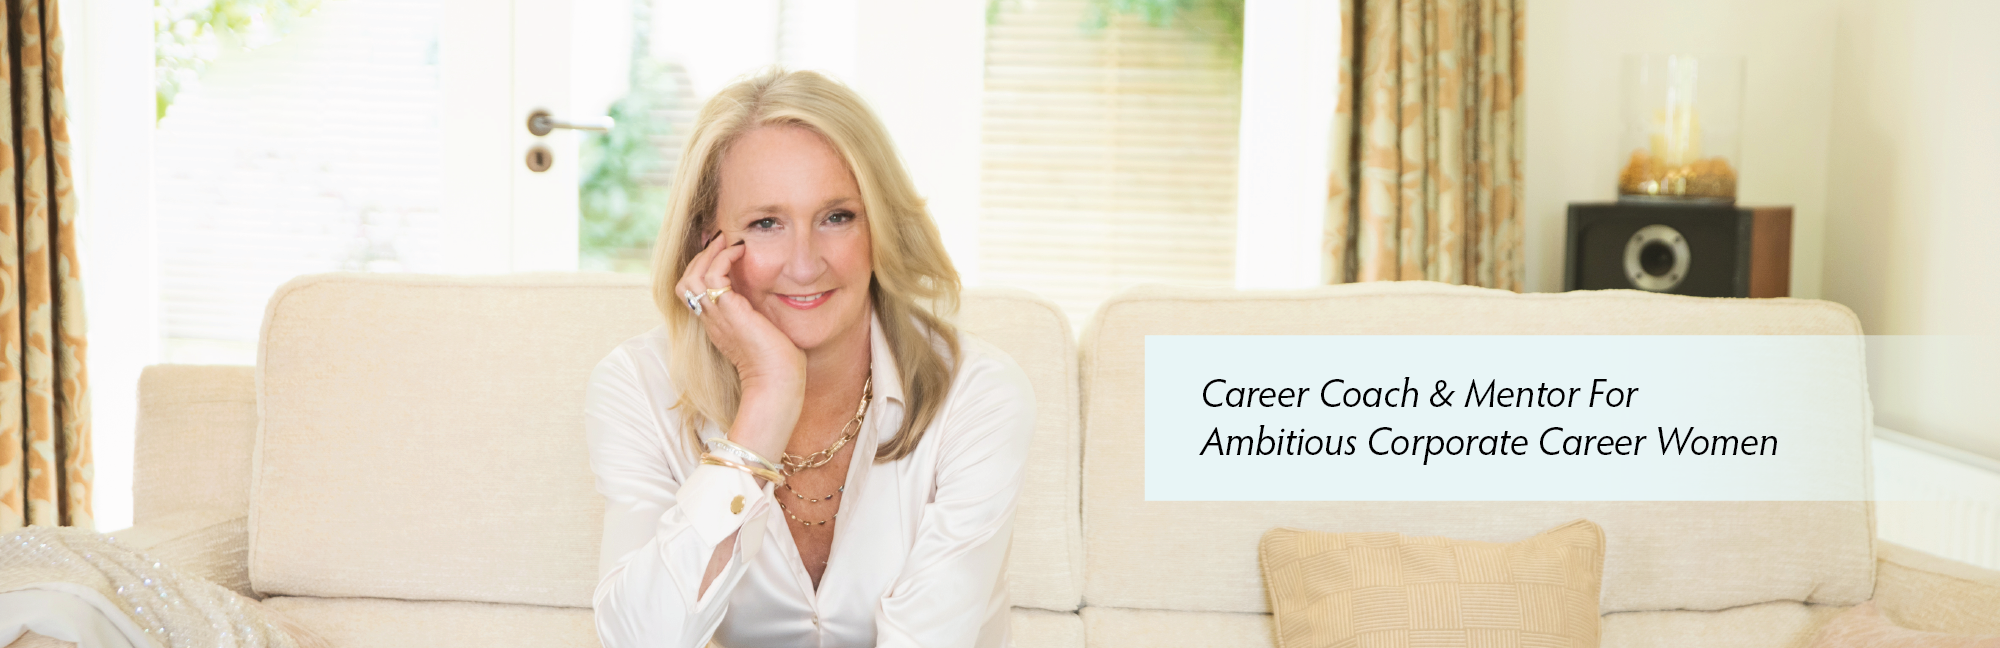 Career Coach & Mentor For Ambitious Corporate Career Women